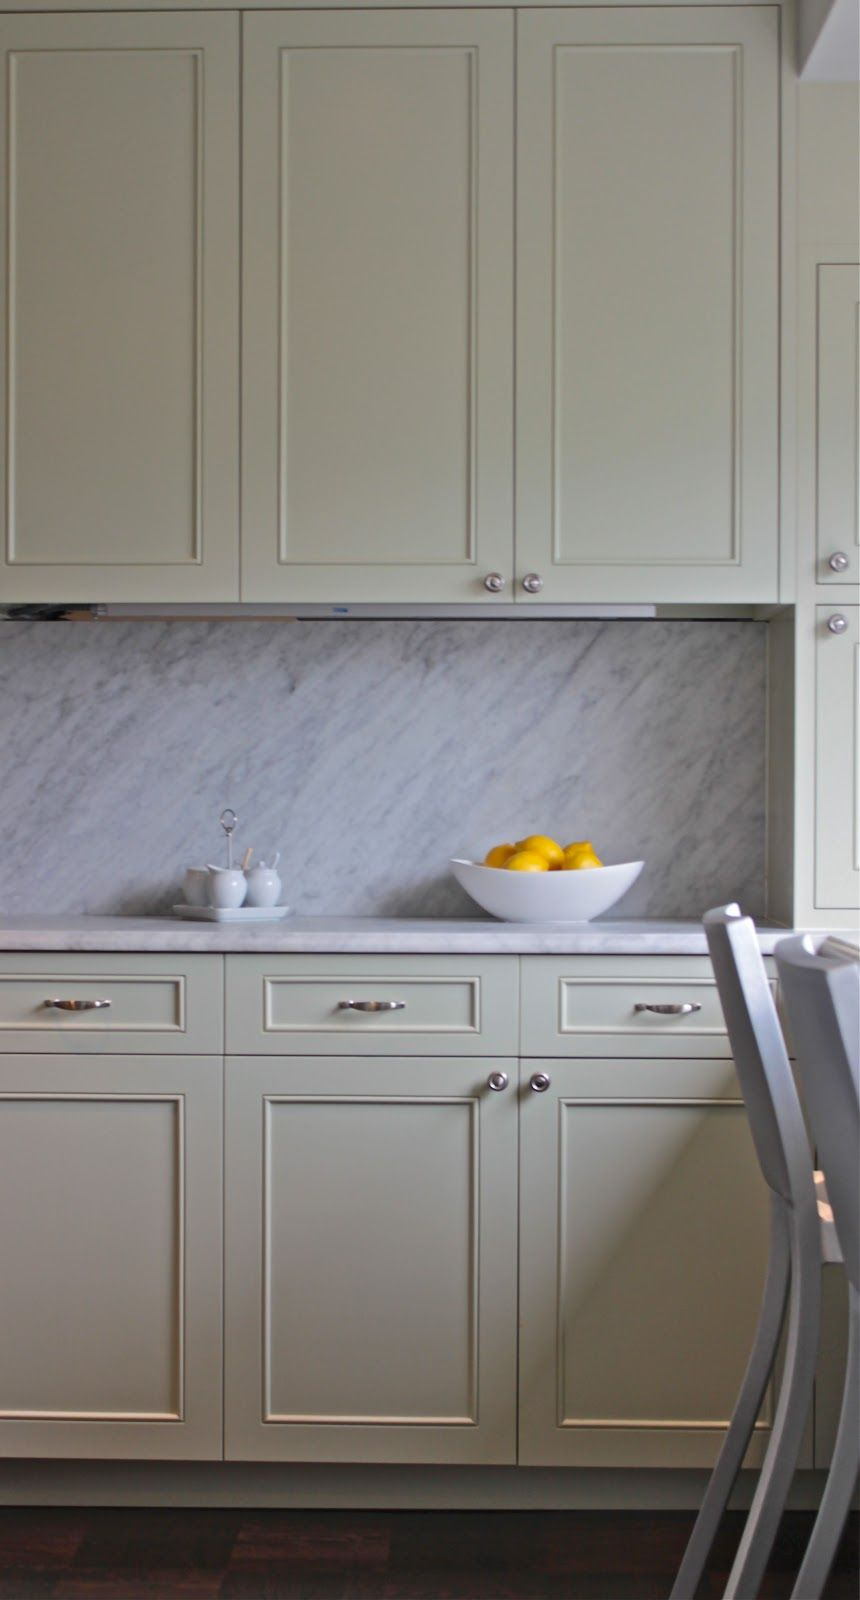 Cabinets Painted In Soft Fern From Benjamin Moore Compliment The